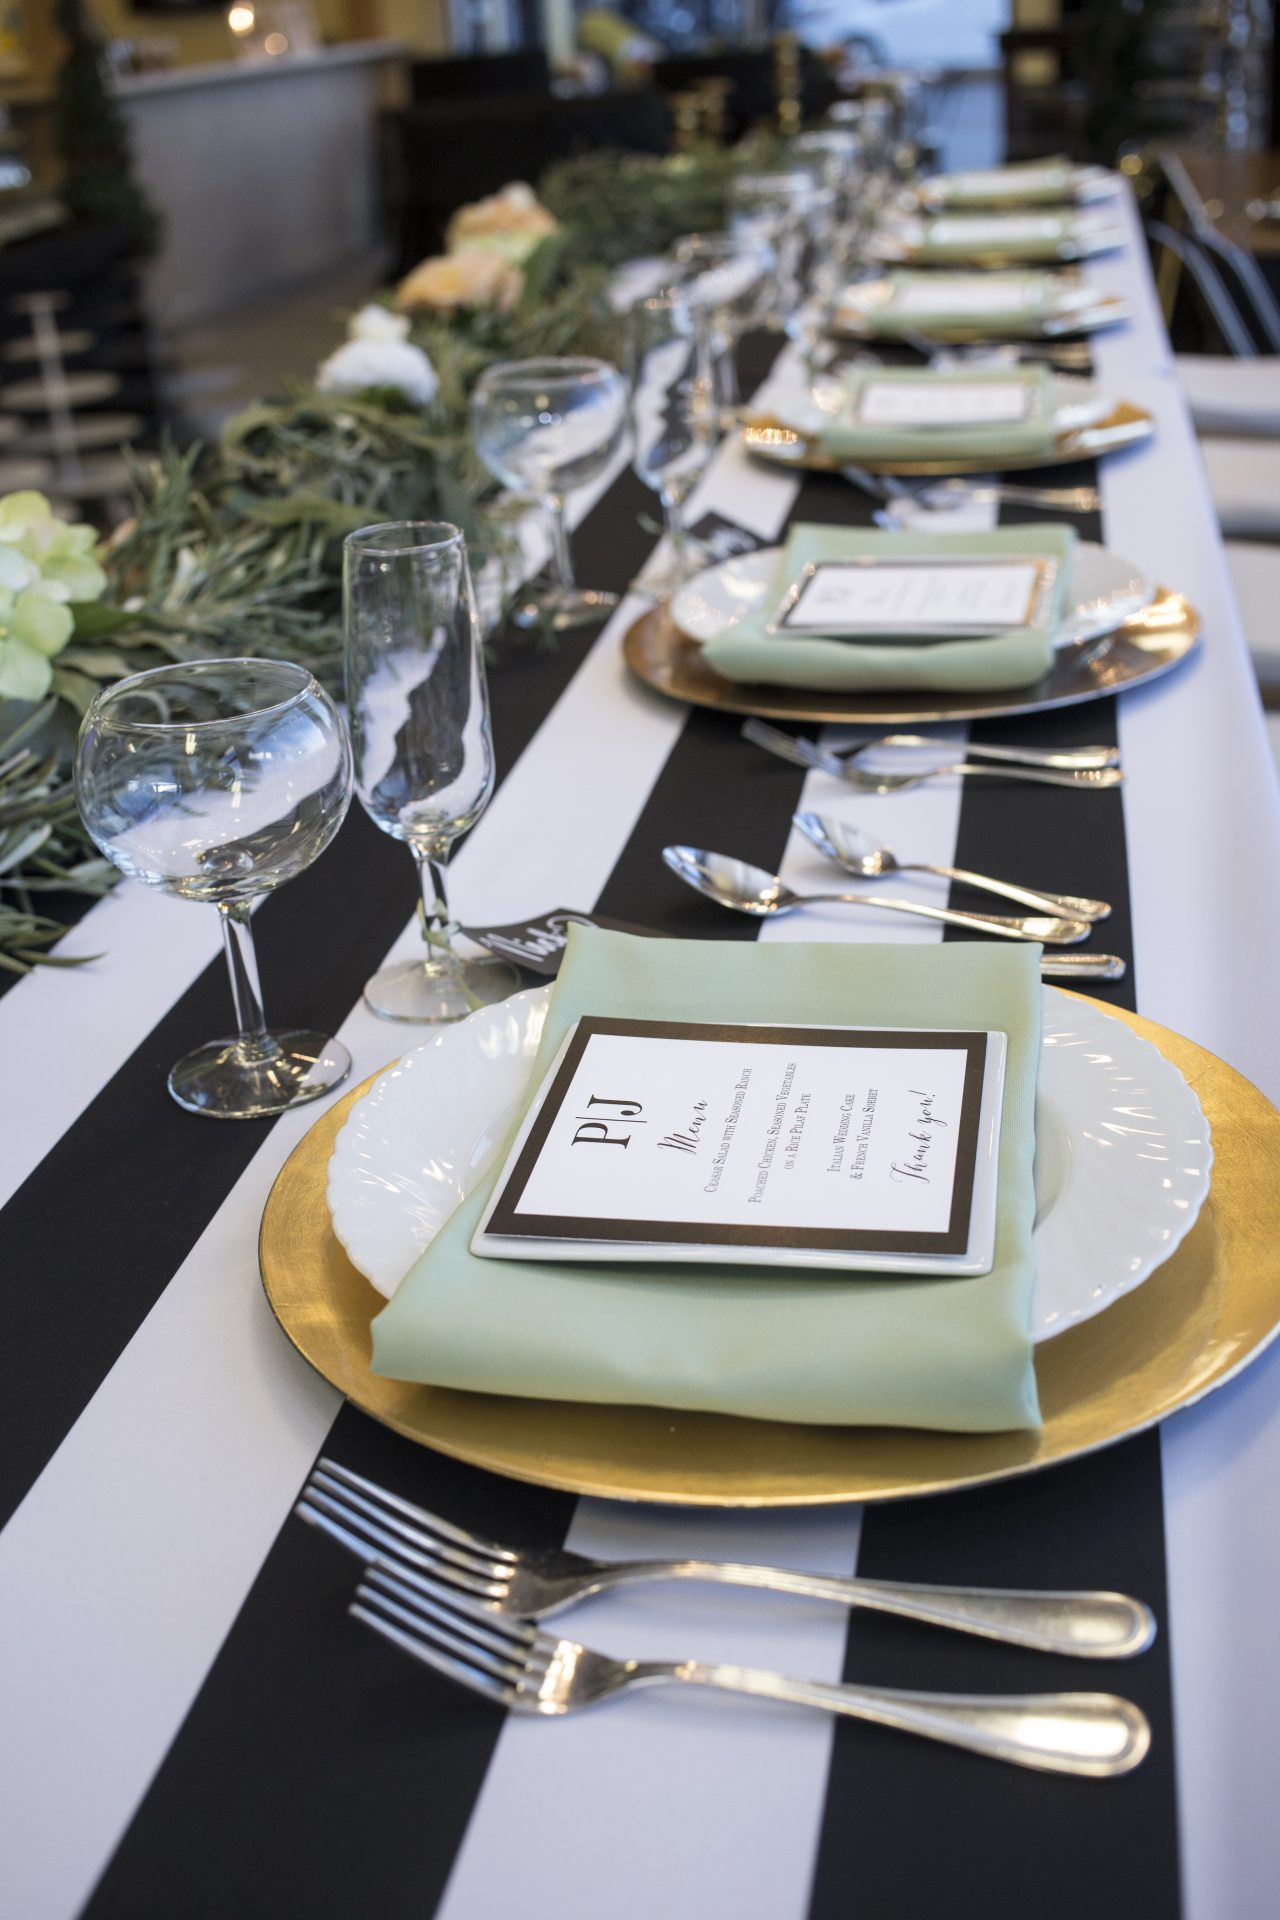 Bleu events planning table setting